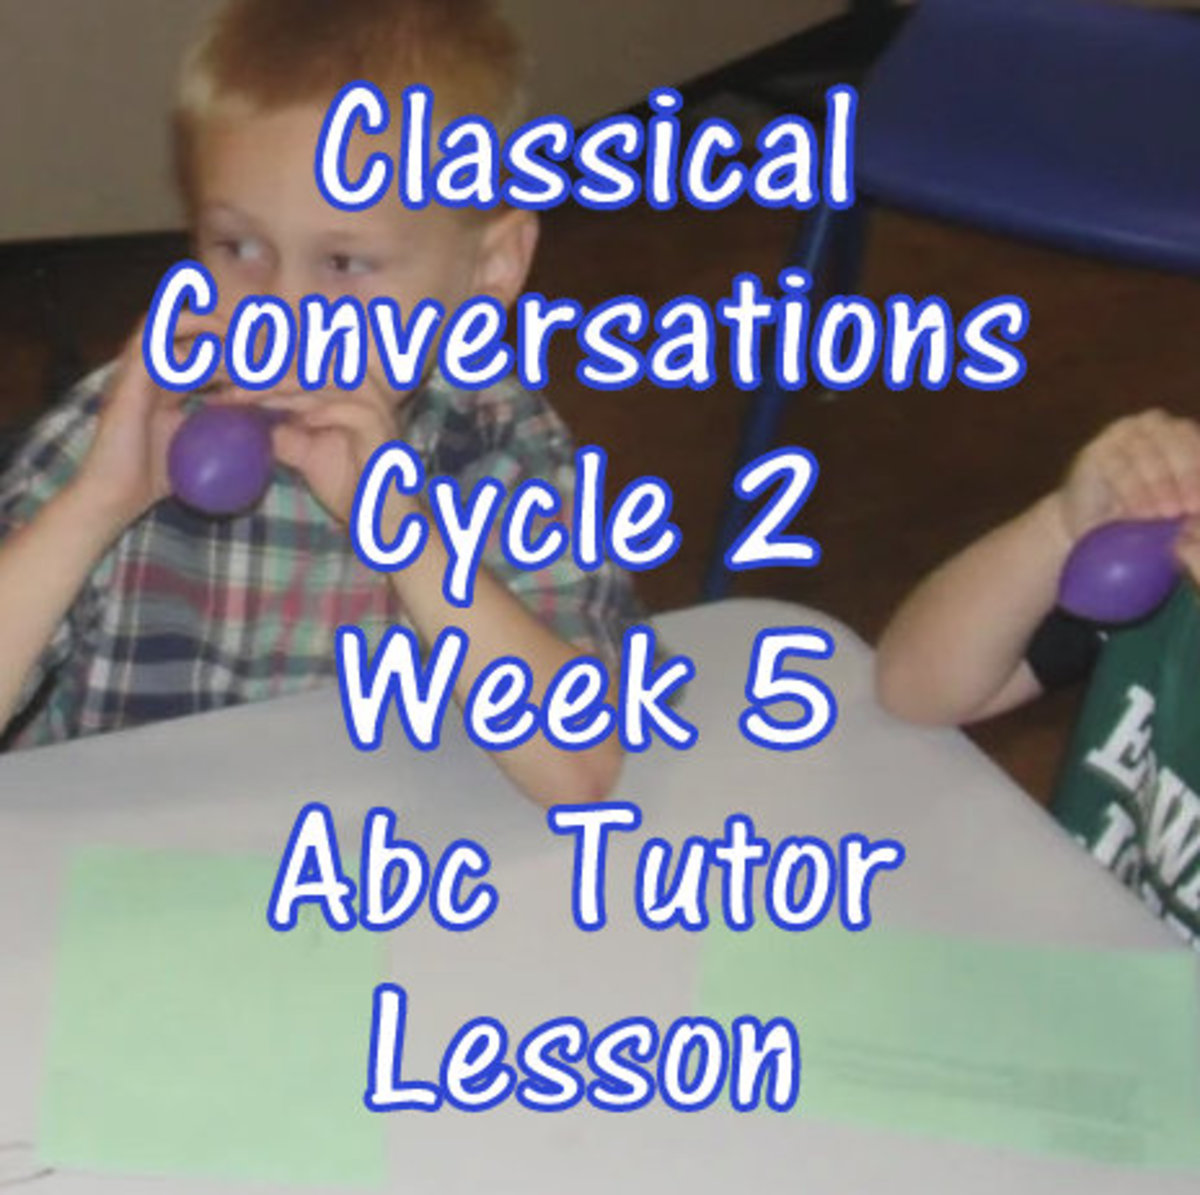 CC Cycle 2 Week 5 Lesson for Abecedarian Tutors